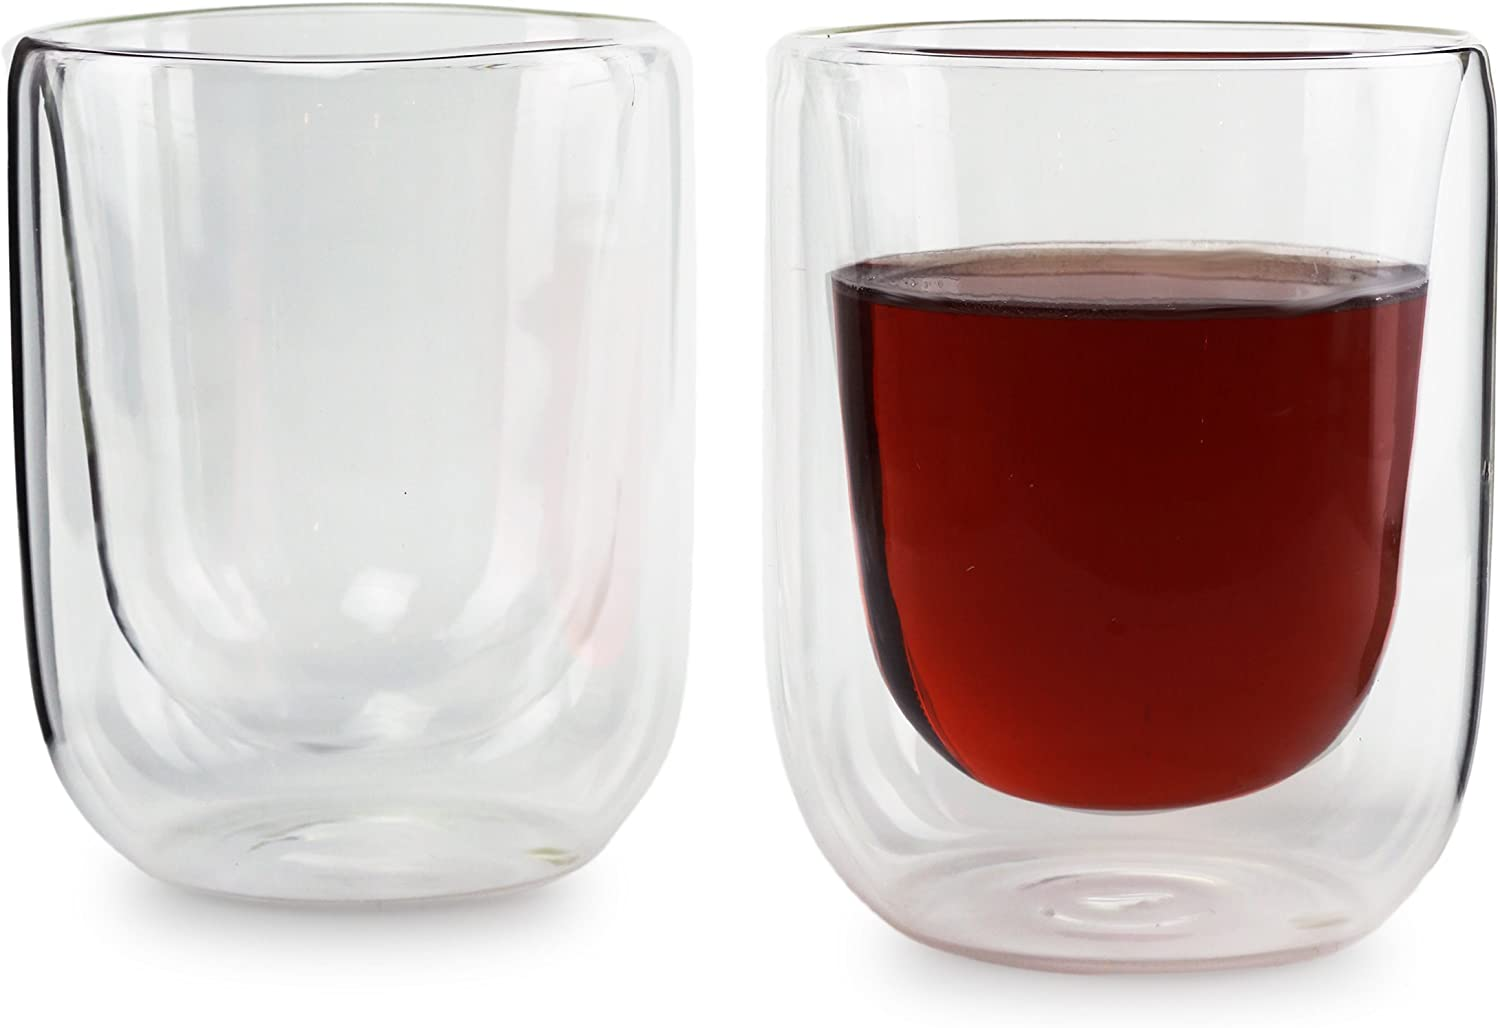 Circleware 44931 Thermax set of 2-13.8 Oz. Double-Wall Insulated Multi Purpose drinking glasses Home and Kitchen Utensils, 13.8oz